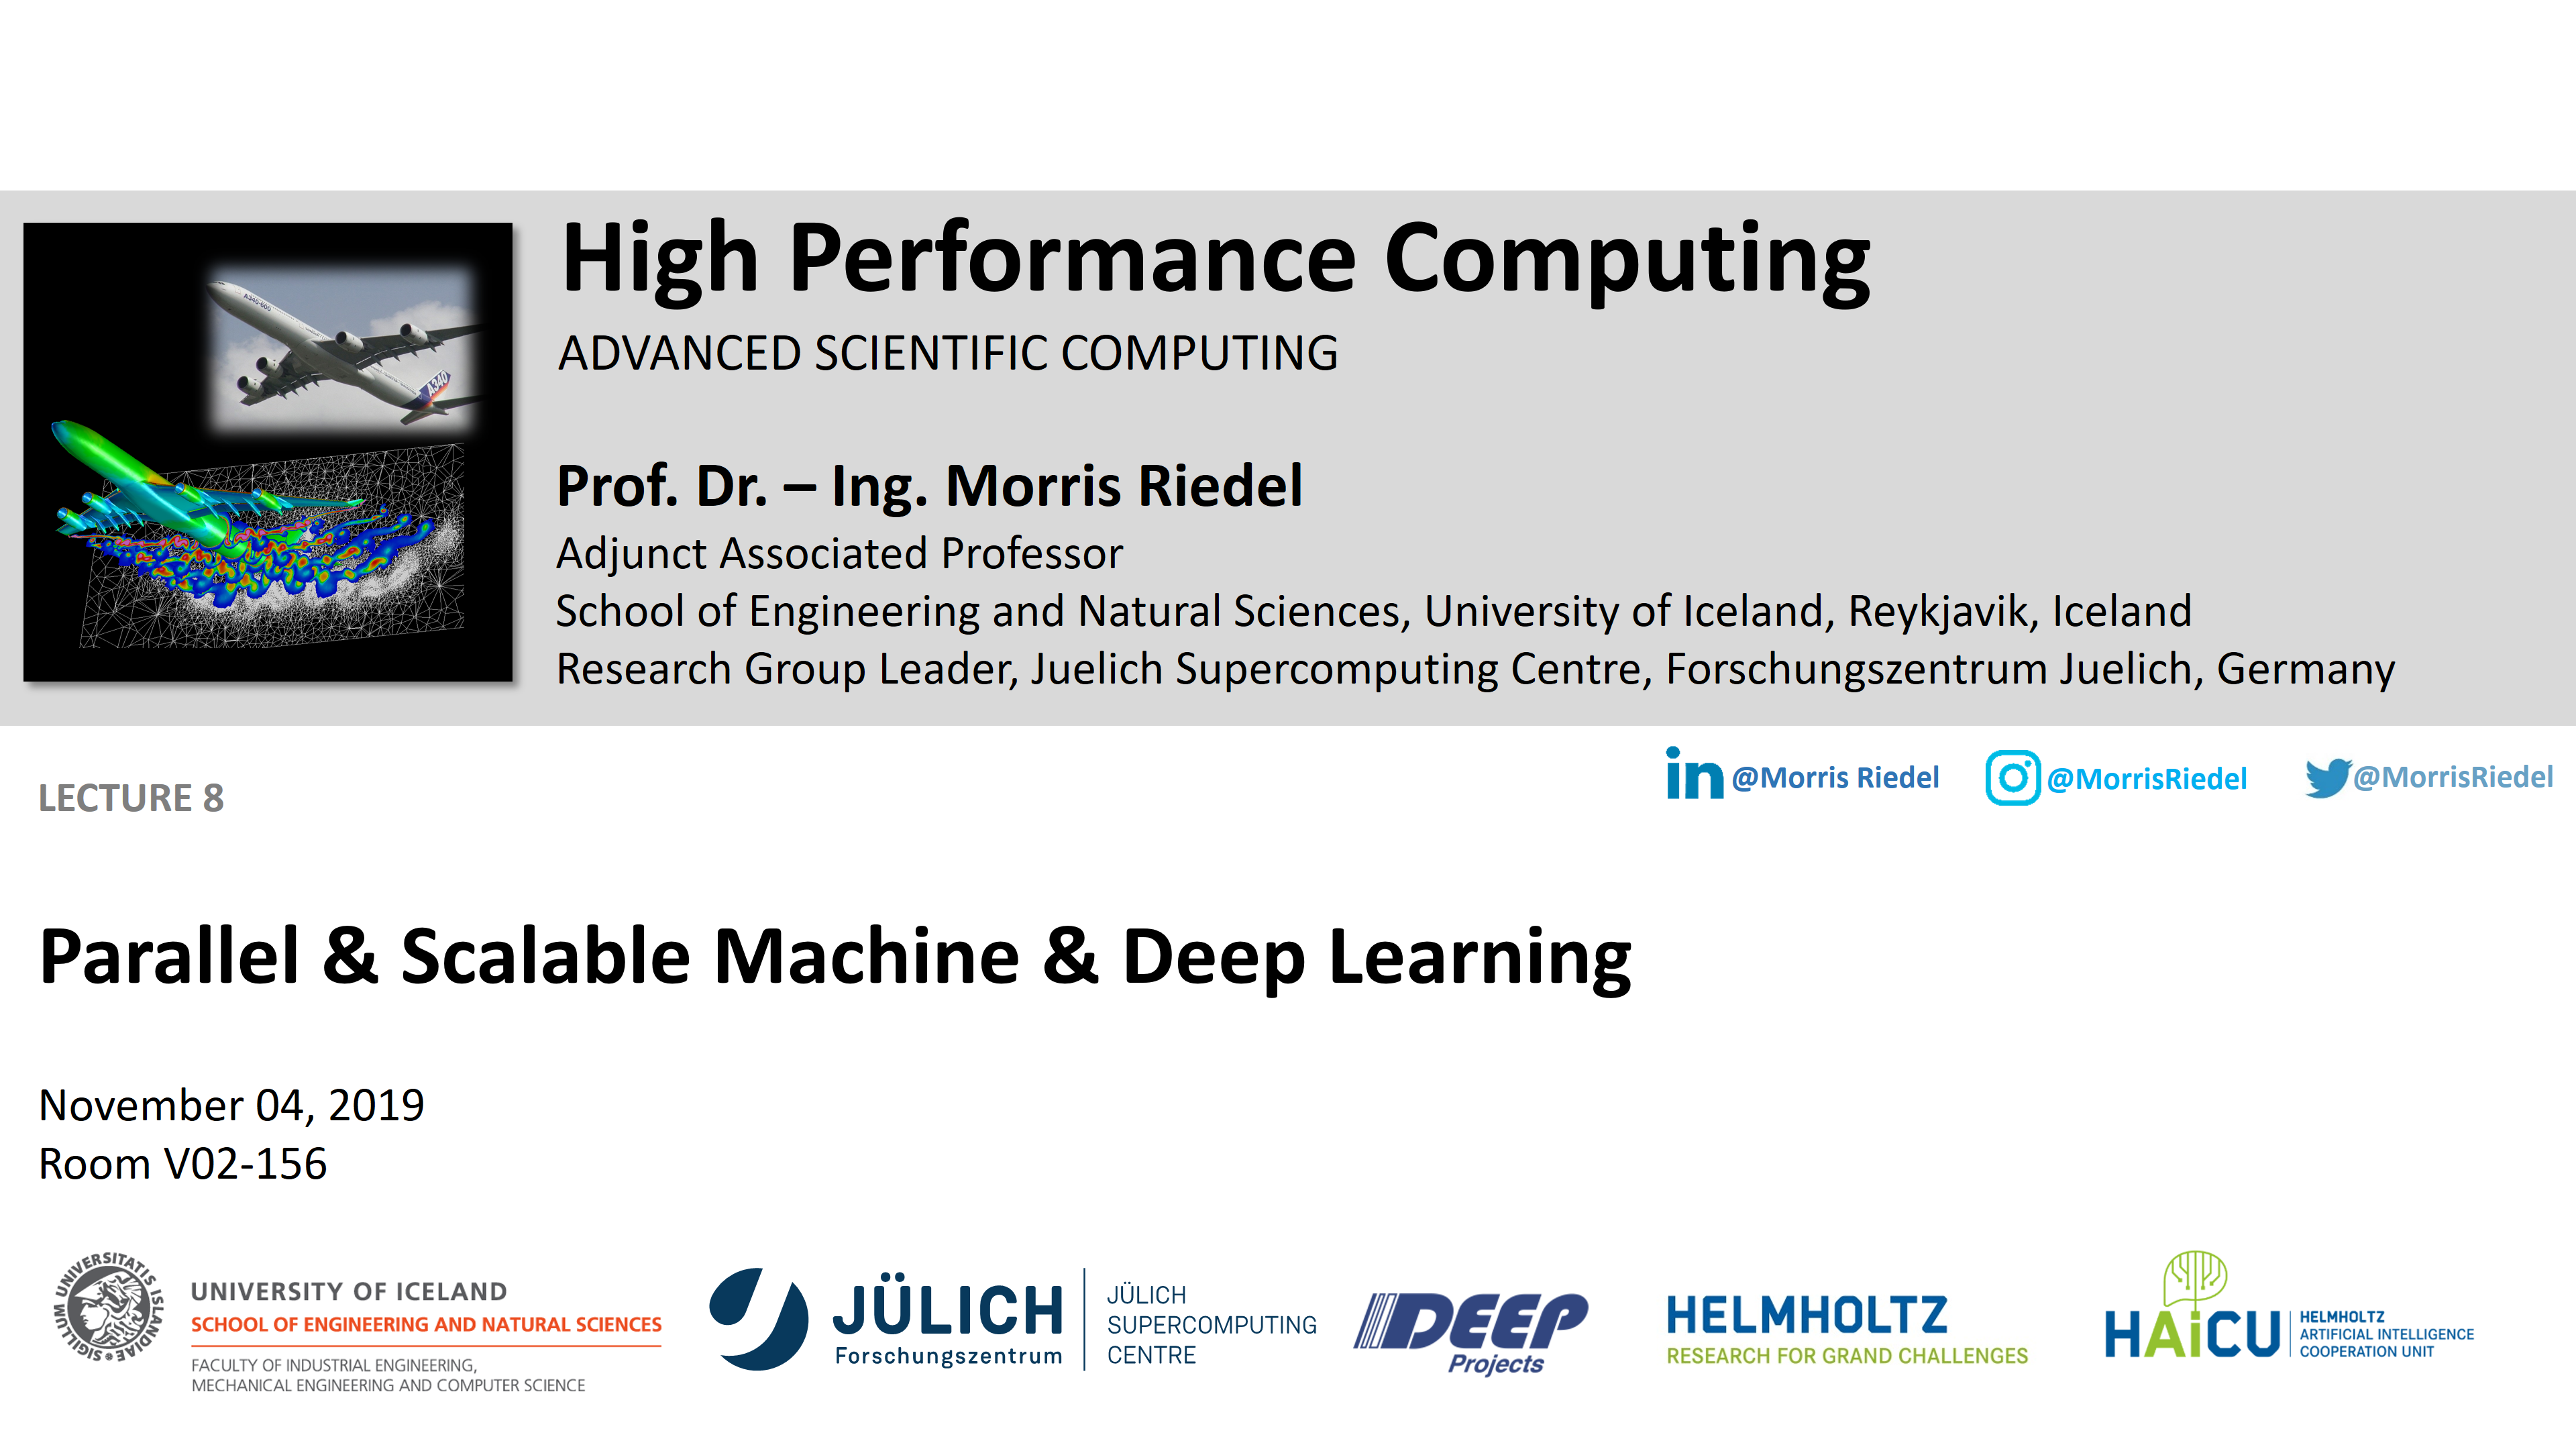 HPC - Parallel and Scalable Machine and Deep Learning